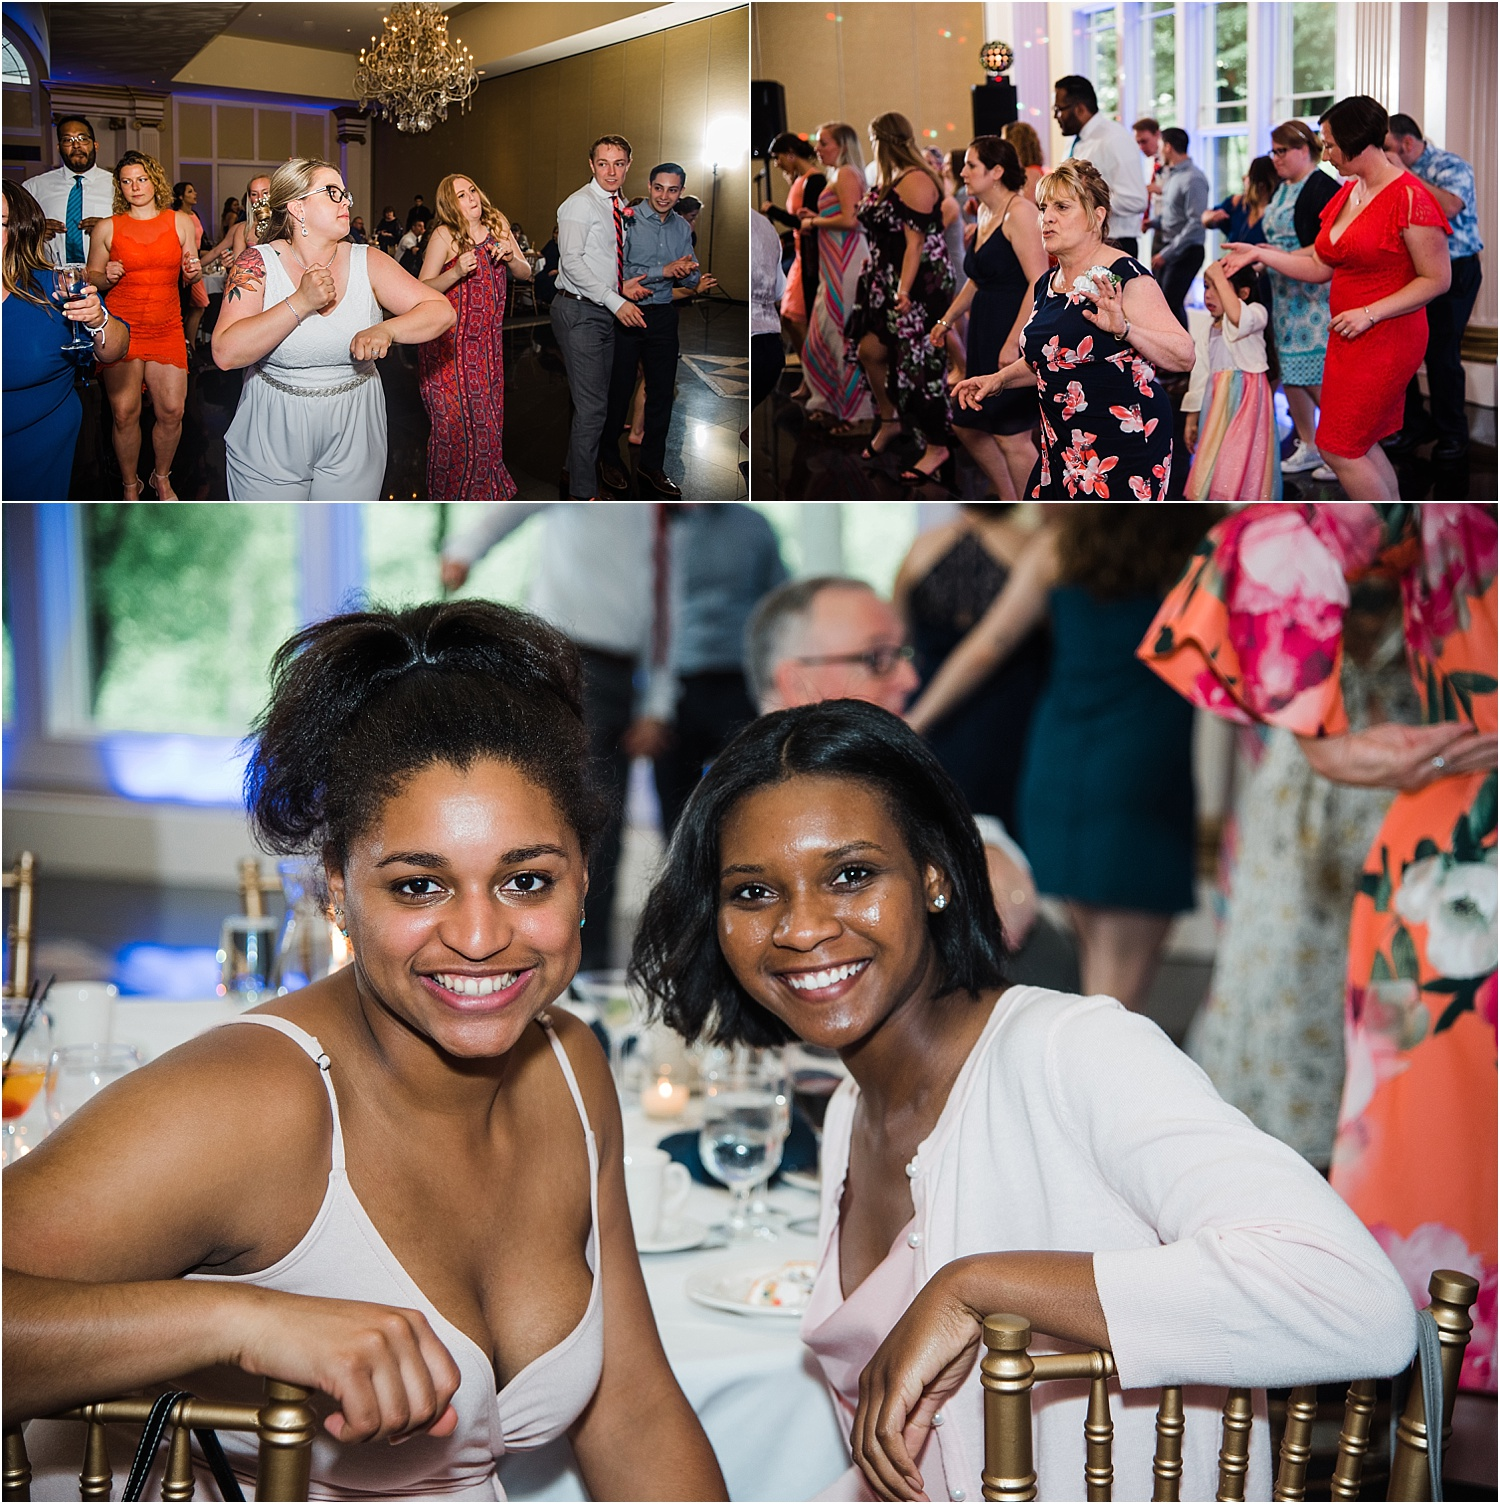 The_Riverview_Simsbury_Connecticut_Wedding_LGBT_Weddings_083.jpg